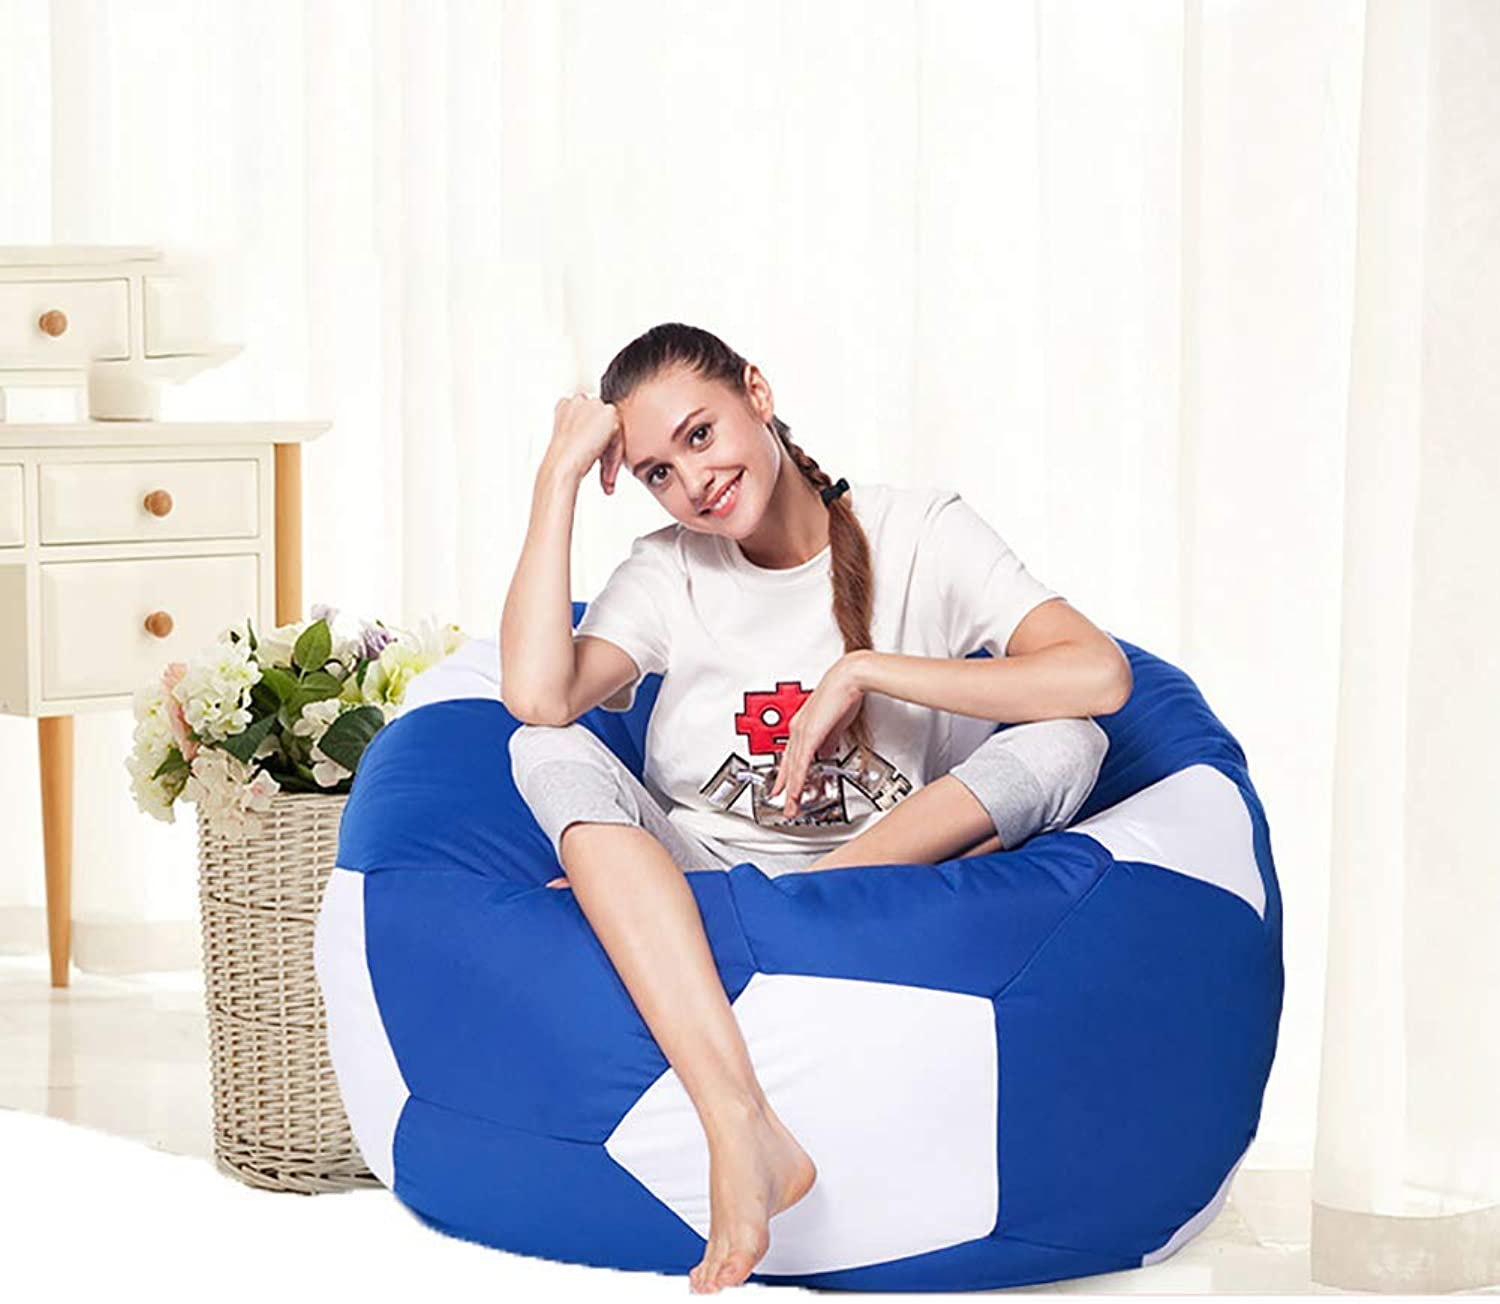 Football Bean Bag Chairs, Lazy Sofa Recliner Tatami Bedroom Floor beanbags, Indoor Lounge Recreation Furniture (50-90cm),bluee,50cm